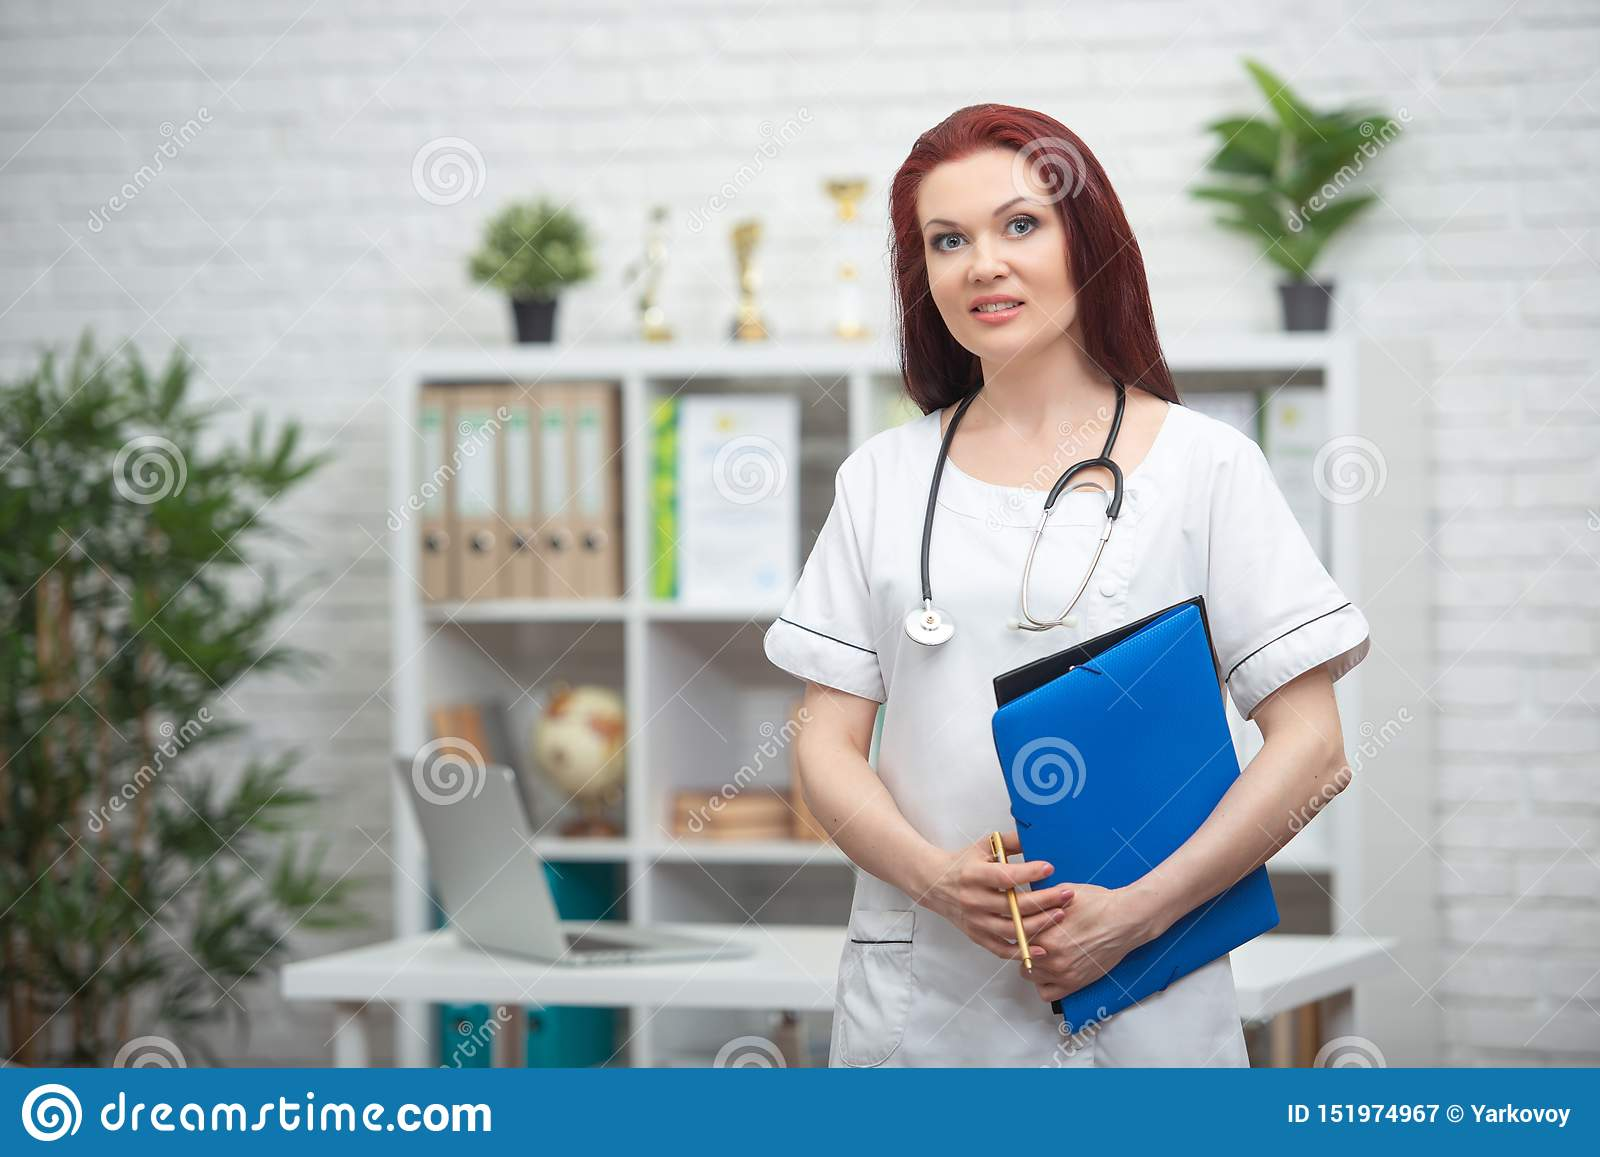 Smiling female doctor in uniform with a stethoscope and a blue folder in her hands is standing in his medical office and meets